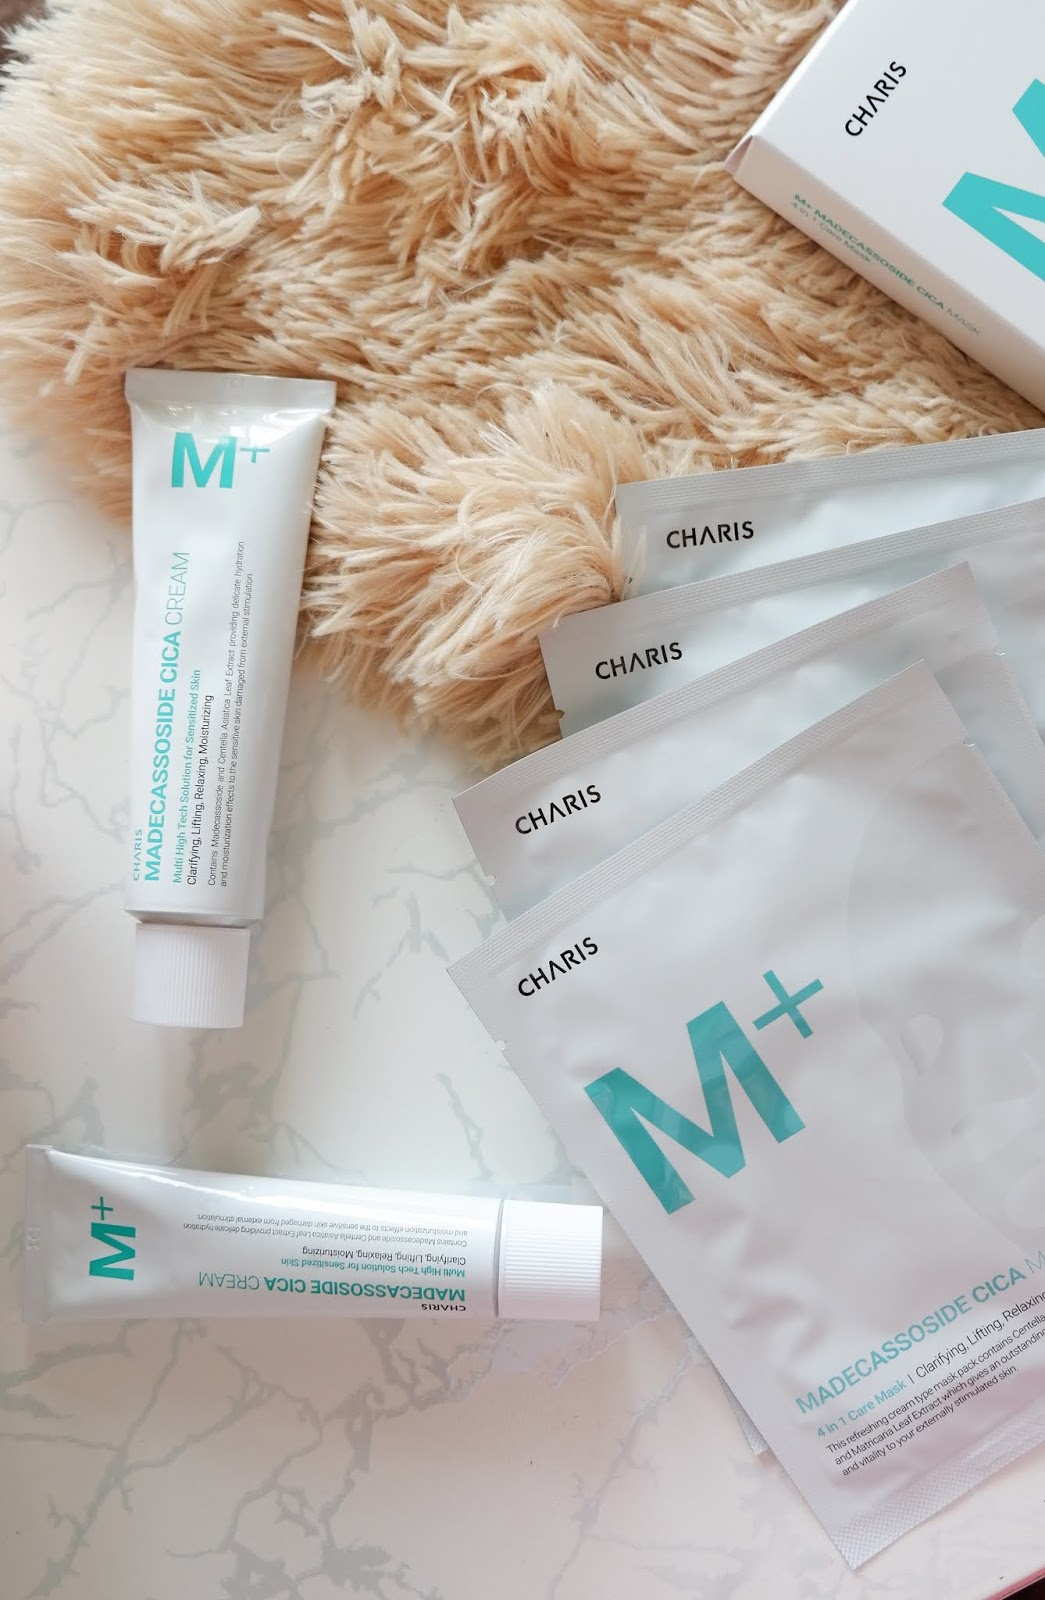 CHARIS: M+ MADECASSOSIDE CICA CREAM AND SHEET MASK REVIEW